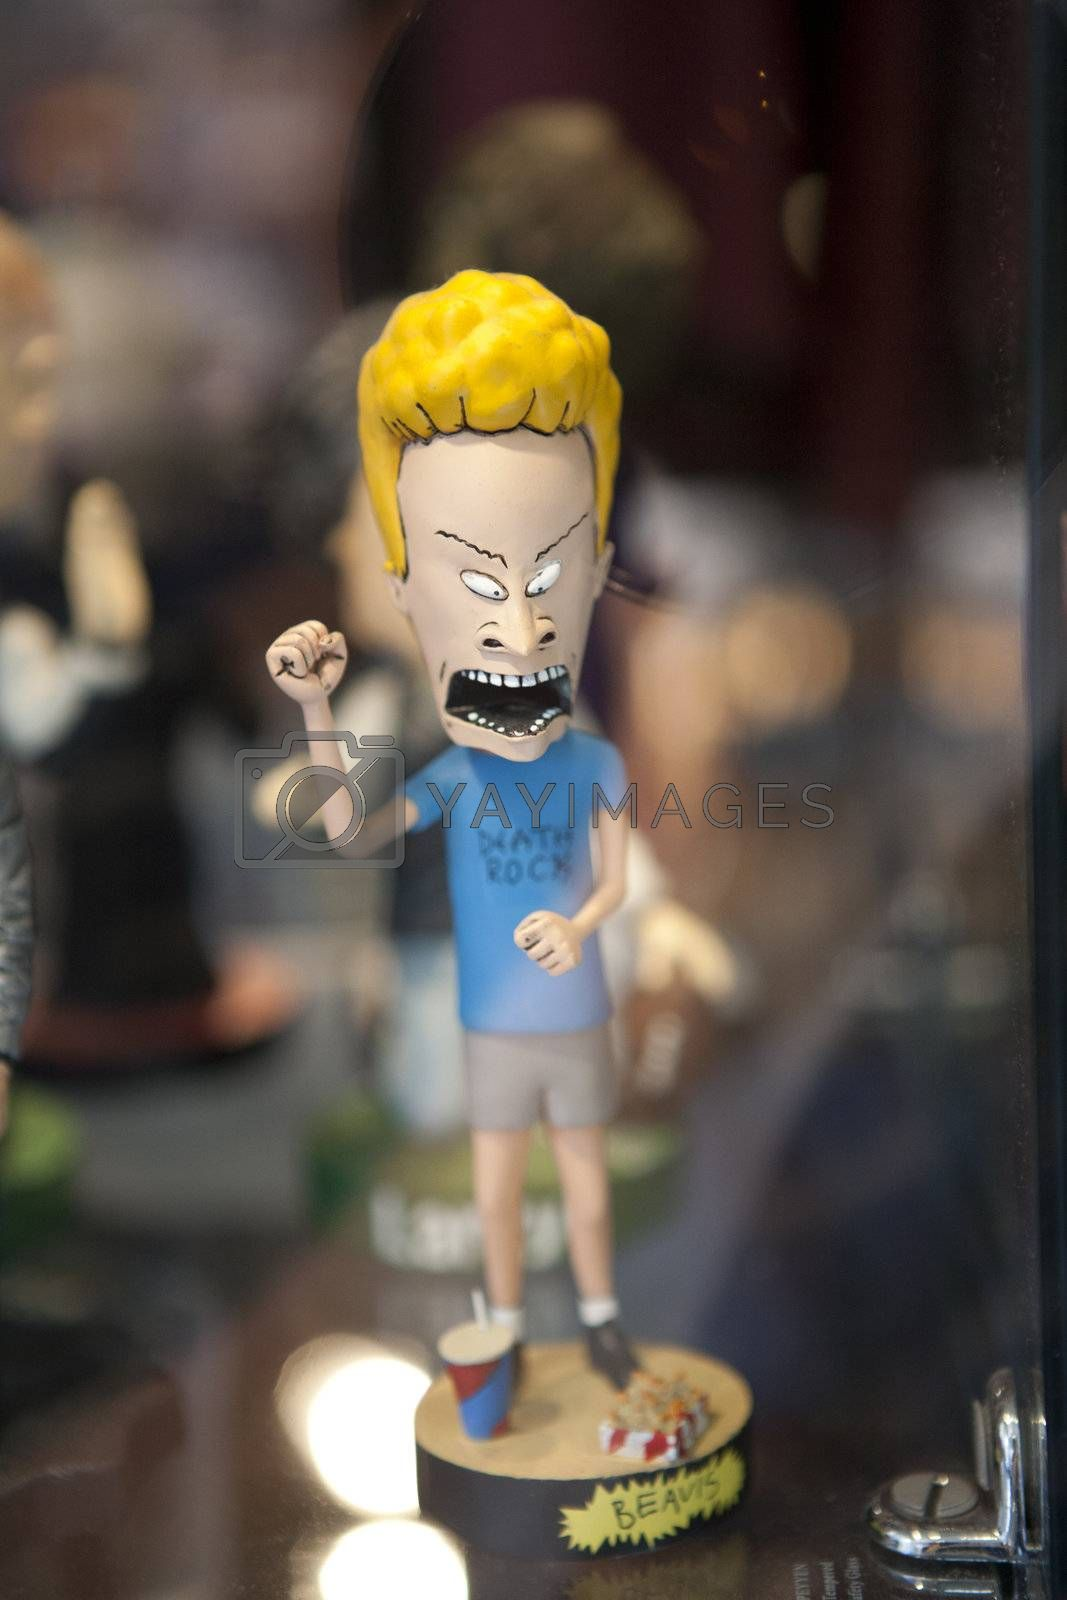 """Beavis from """"Beavis and Butthead"""" bobblehead character, behind glass."""